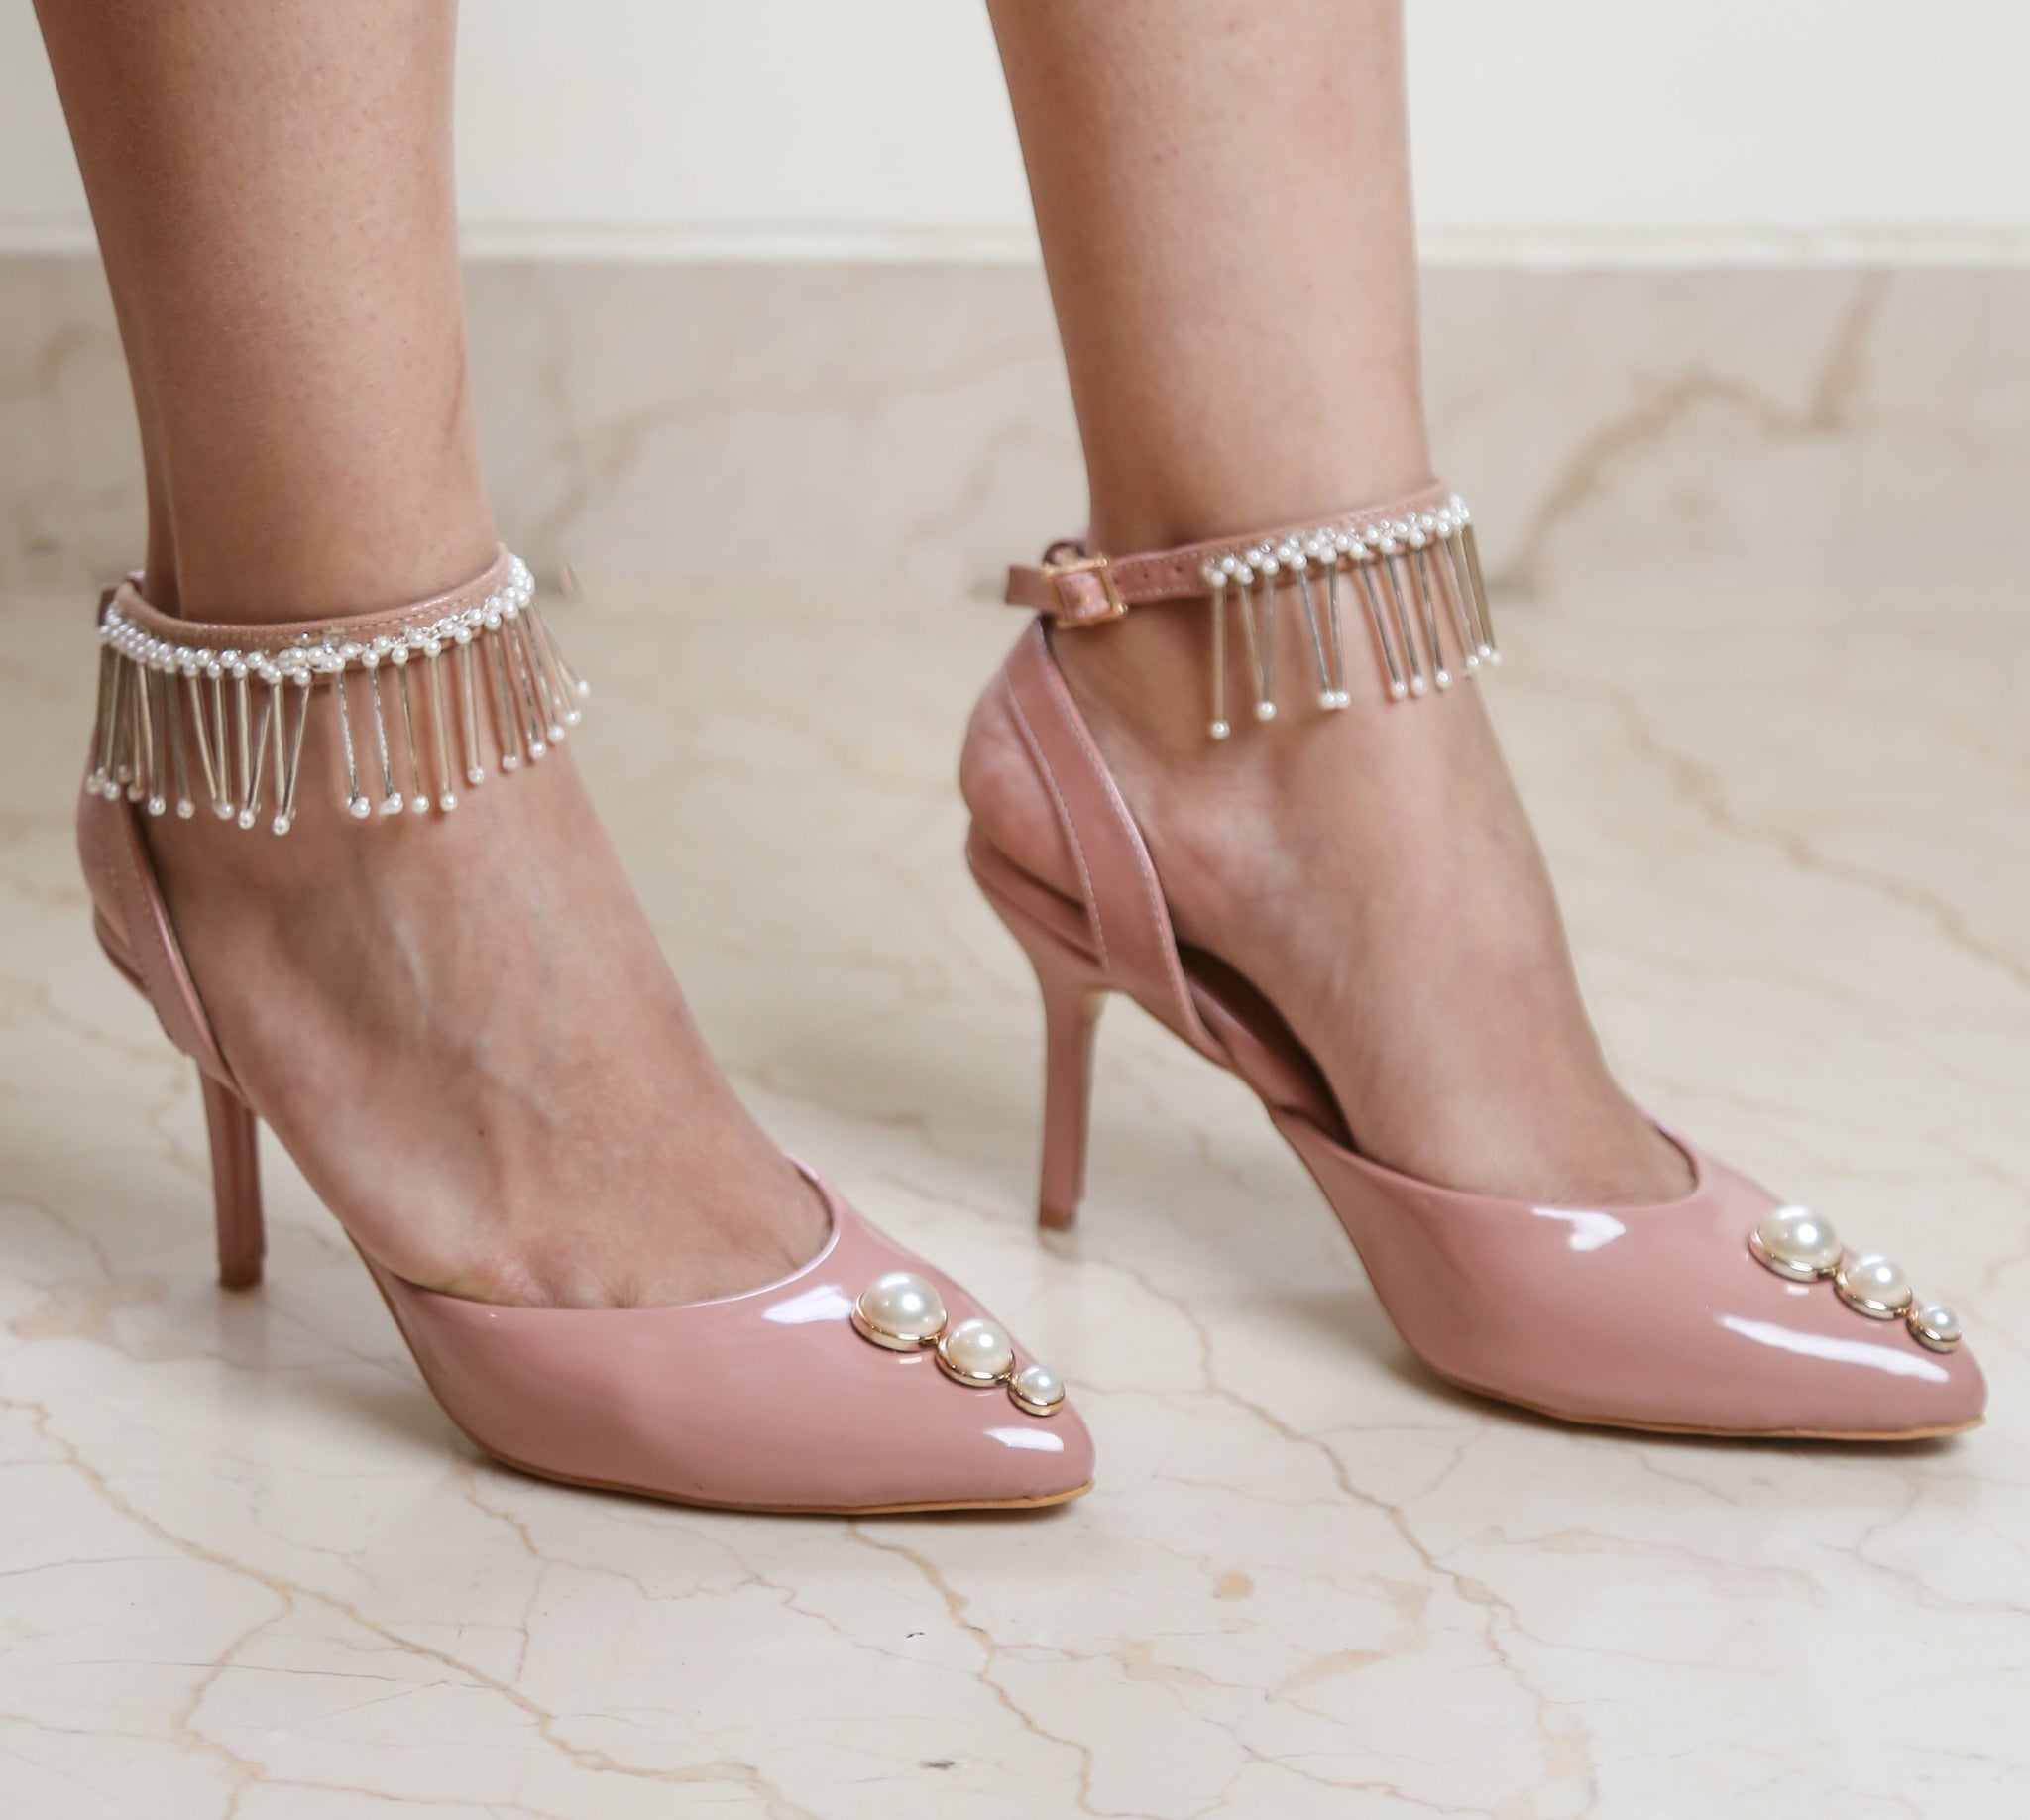 Nude Patent Heels with Pearl Embellished Anklet - Ness